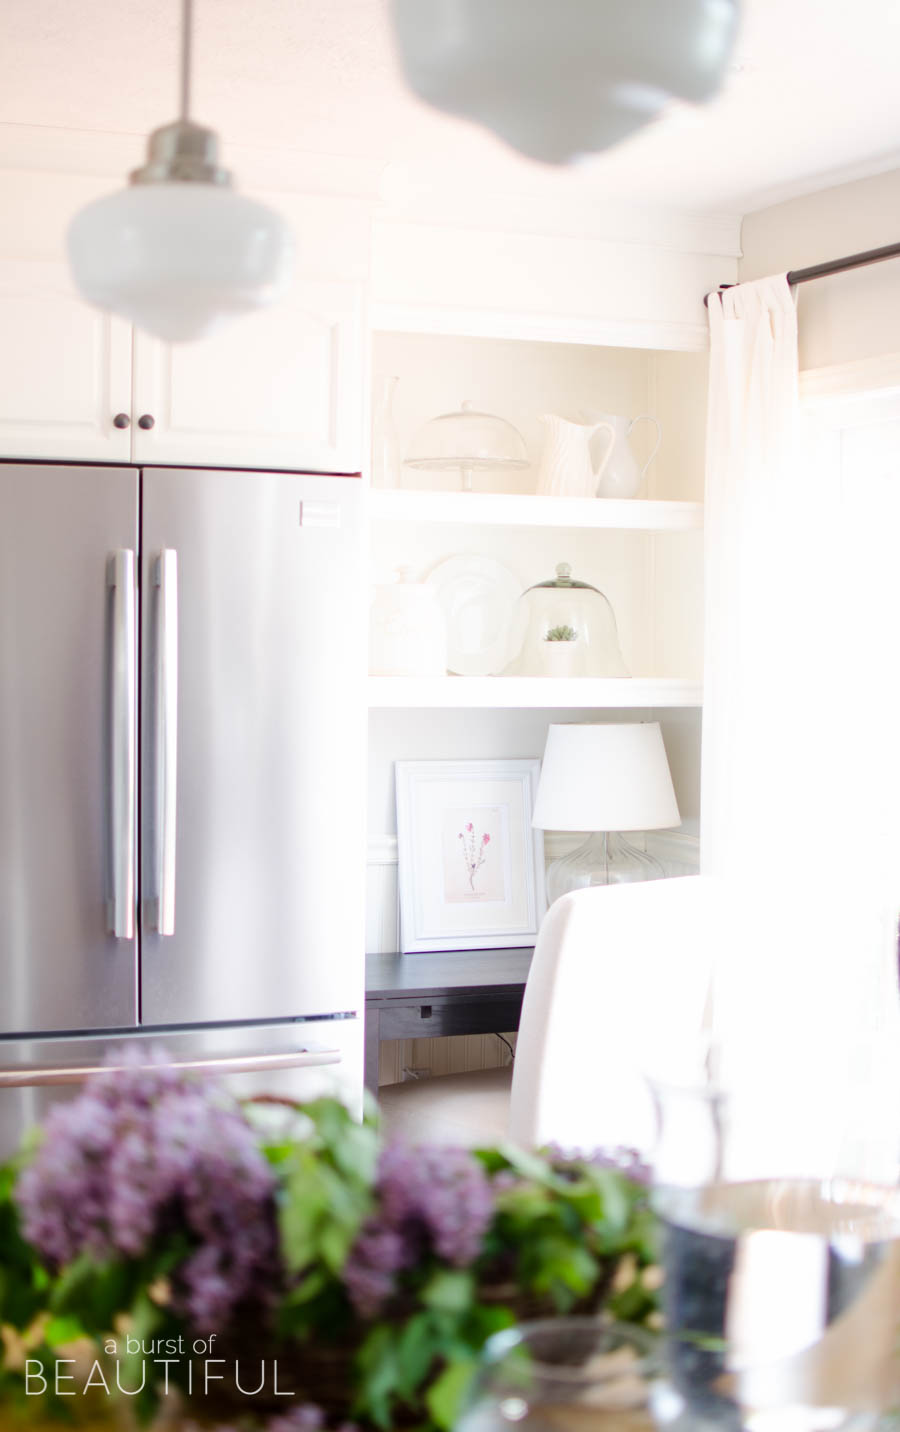 Ideas for creating a beautiful, organized and functional kitchen you'll want to spend time in.